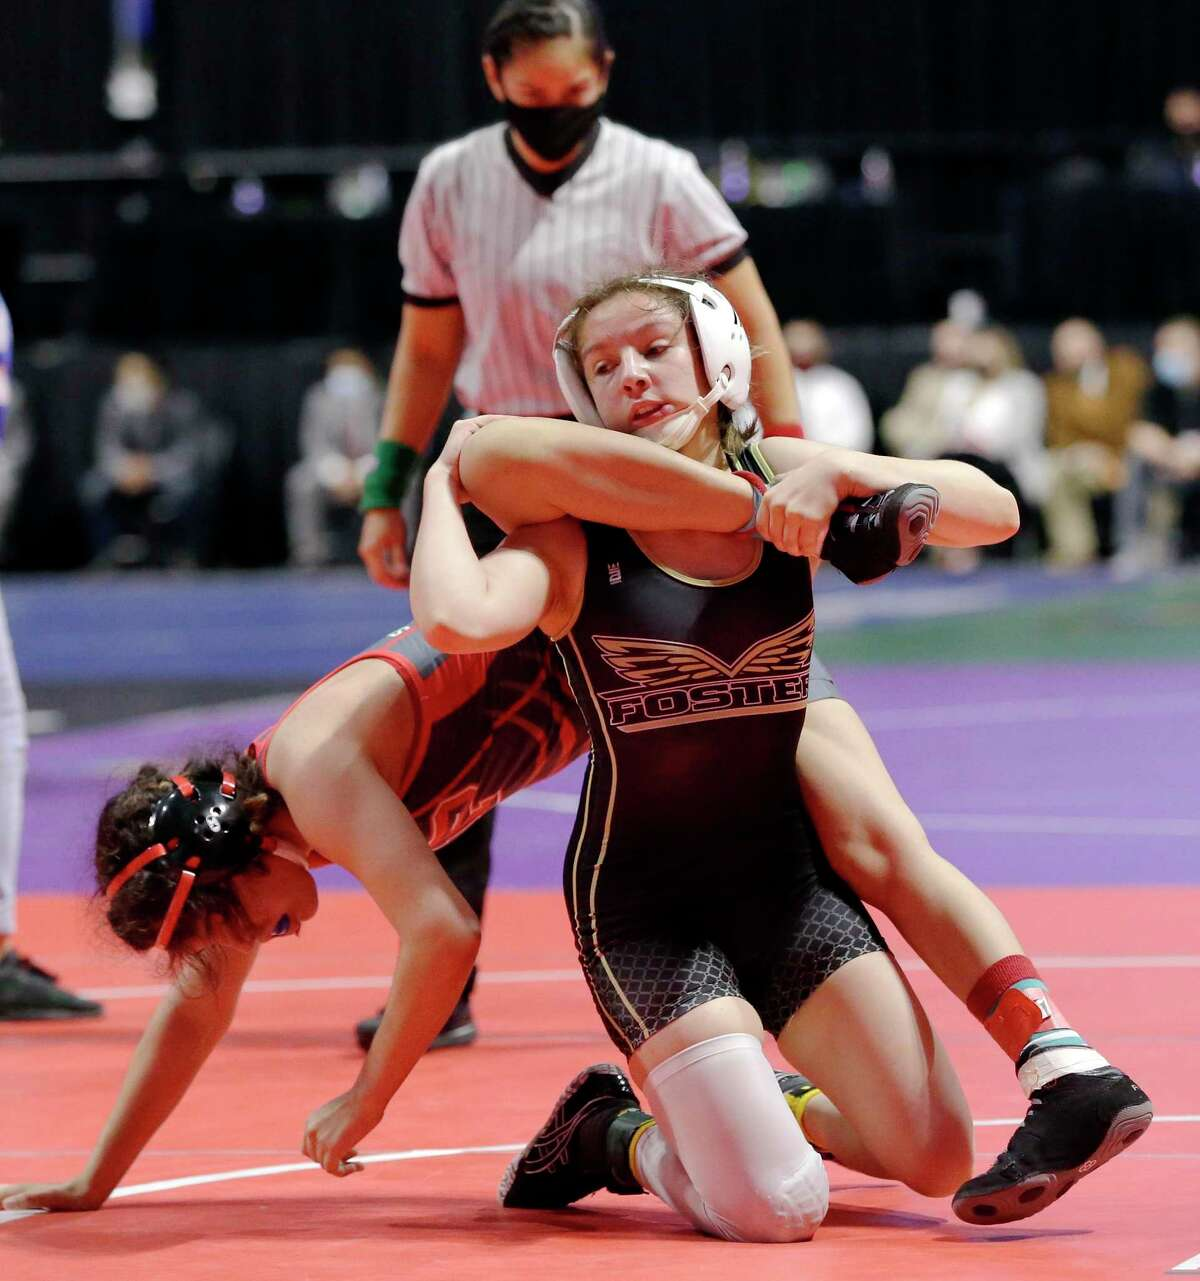 Emily Trevino with Mission Sharyland Pioneer, left, is taken down by Madison Canales with Richmond Foster, right, in the 119 weight class of the UIL Girls 5A State Wrestling Championships Friday, Apr. 23, 2021 at the Berry Center in Cypress, TX.